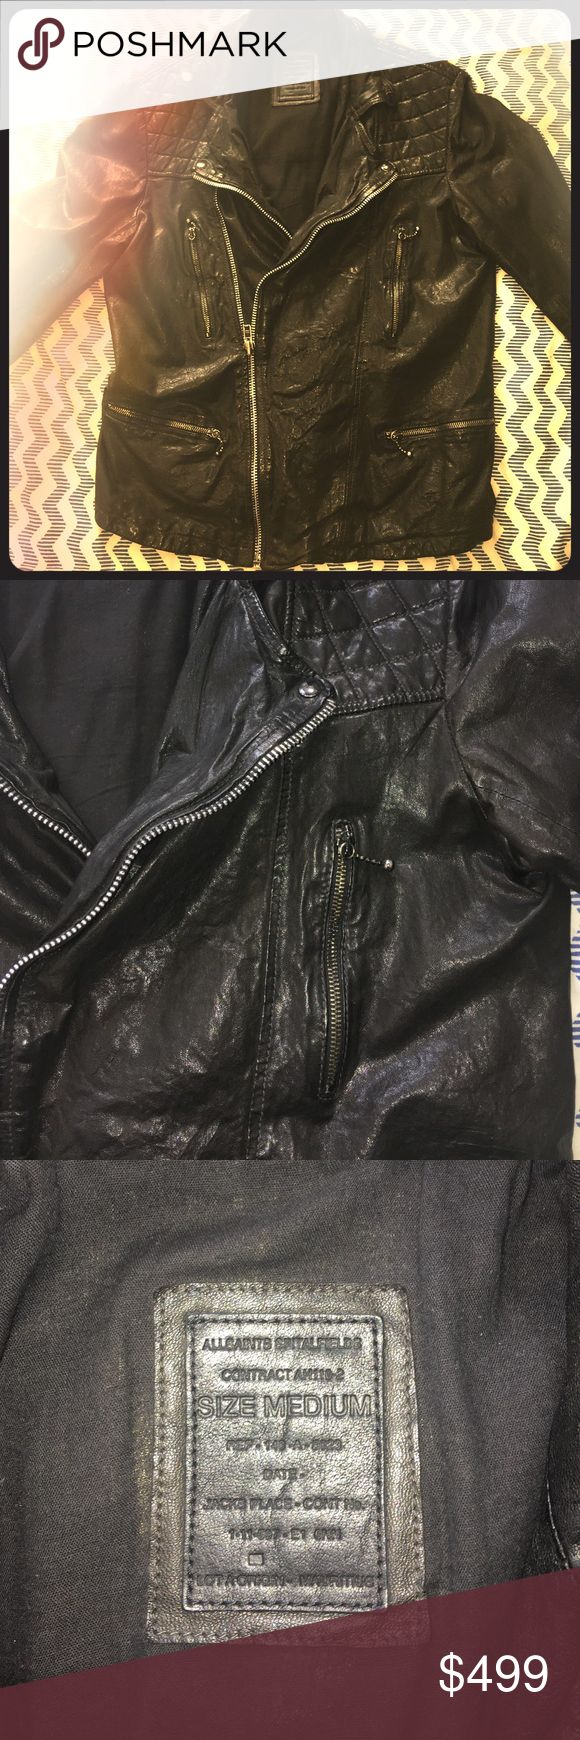 All Saints Original Biker Jacket 1st Edition This is the first edition release of the All Saints Biker jacket. Taken great care of. And was truly the best leather jacket I've owned. All Saints Jackets & Coats Performance Jackets